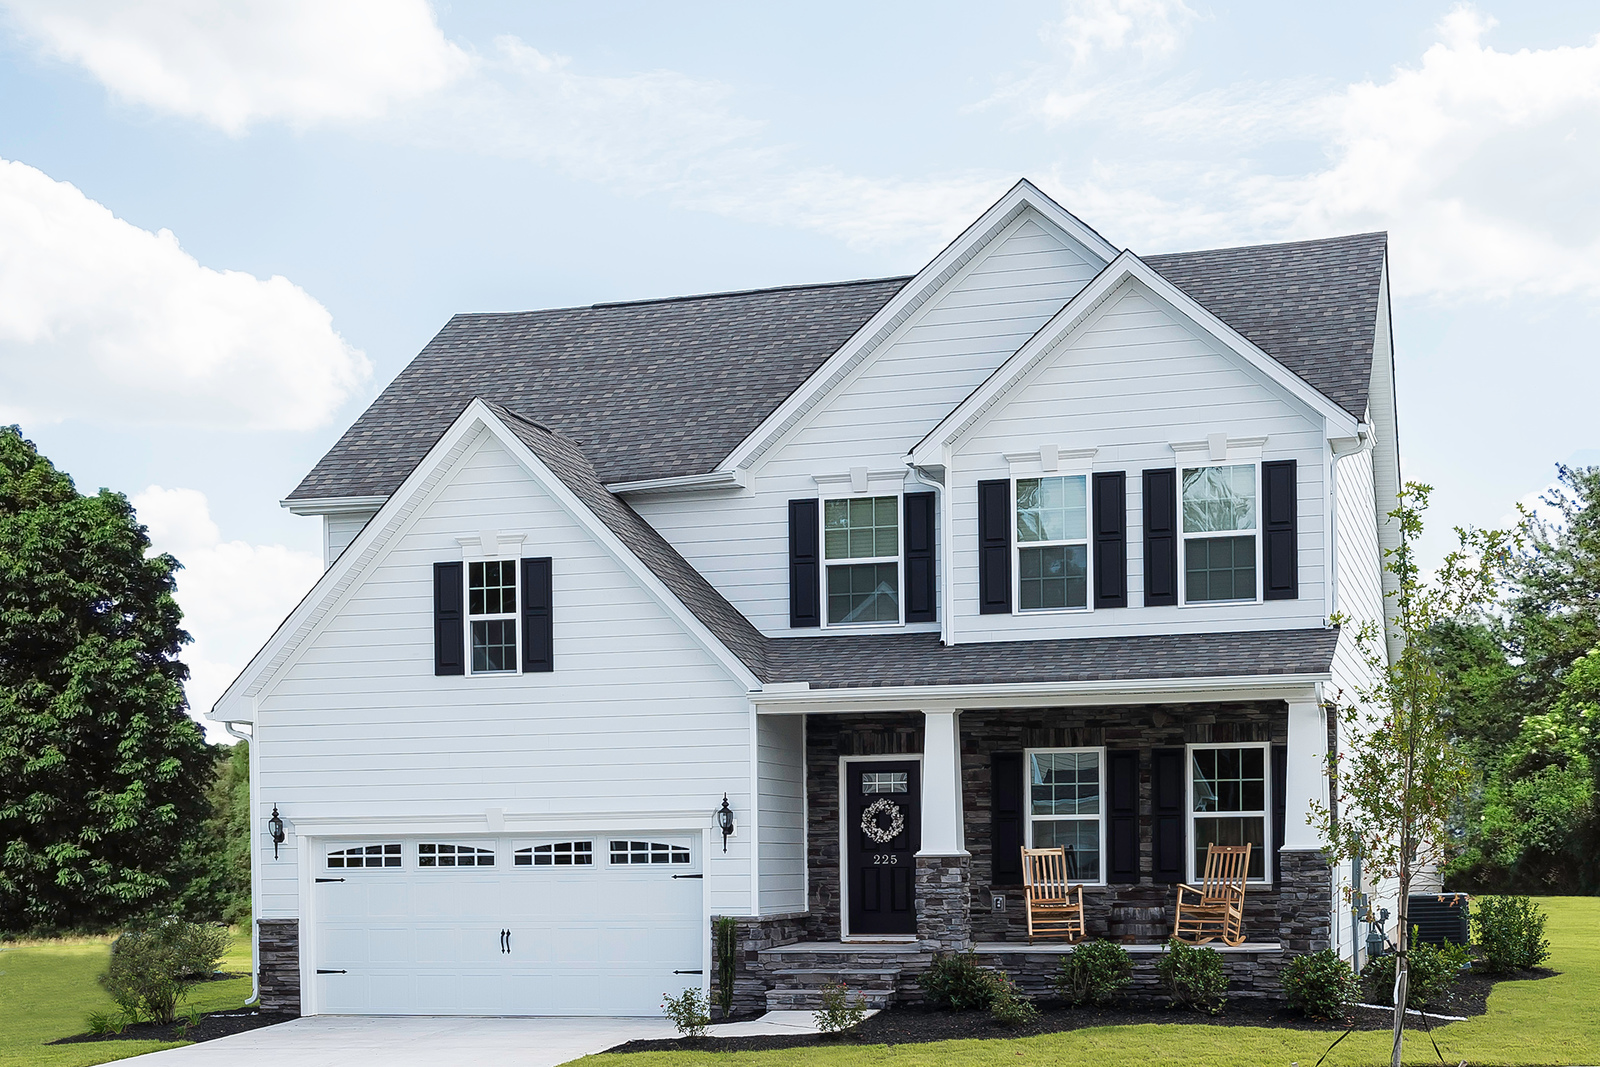 New Homes for sale at Lakeview in Moyock, NC